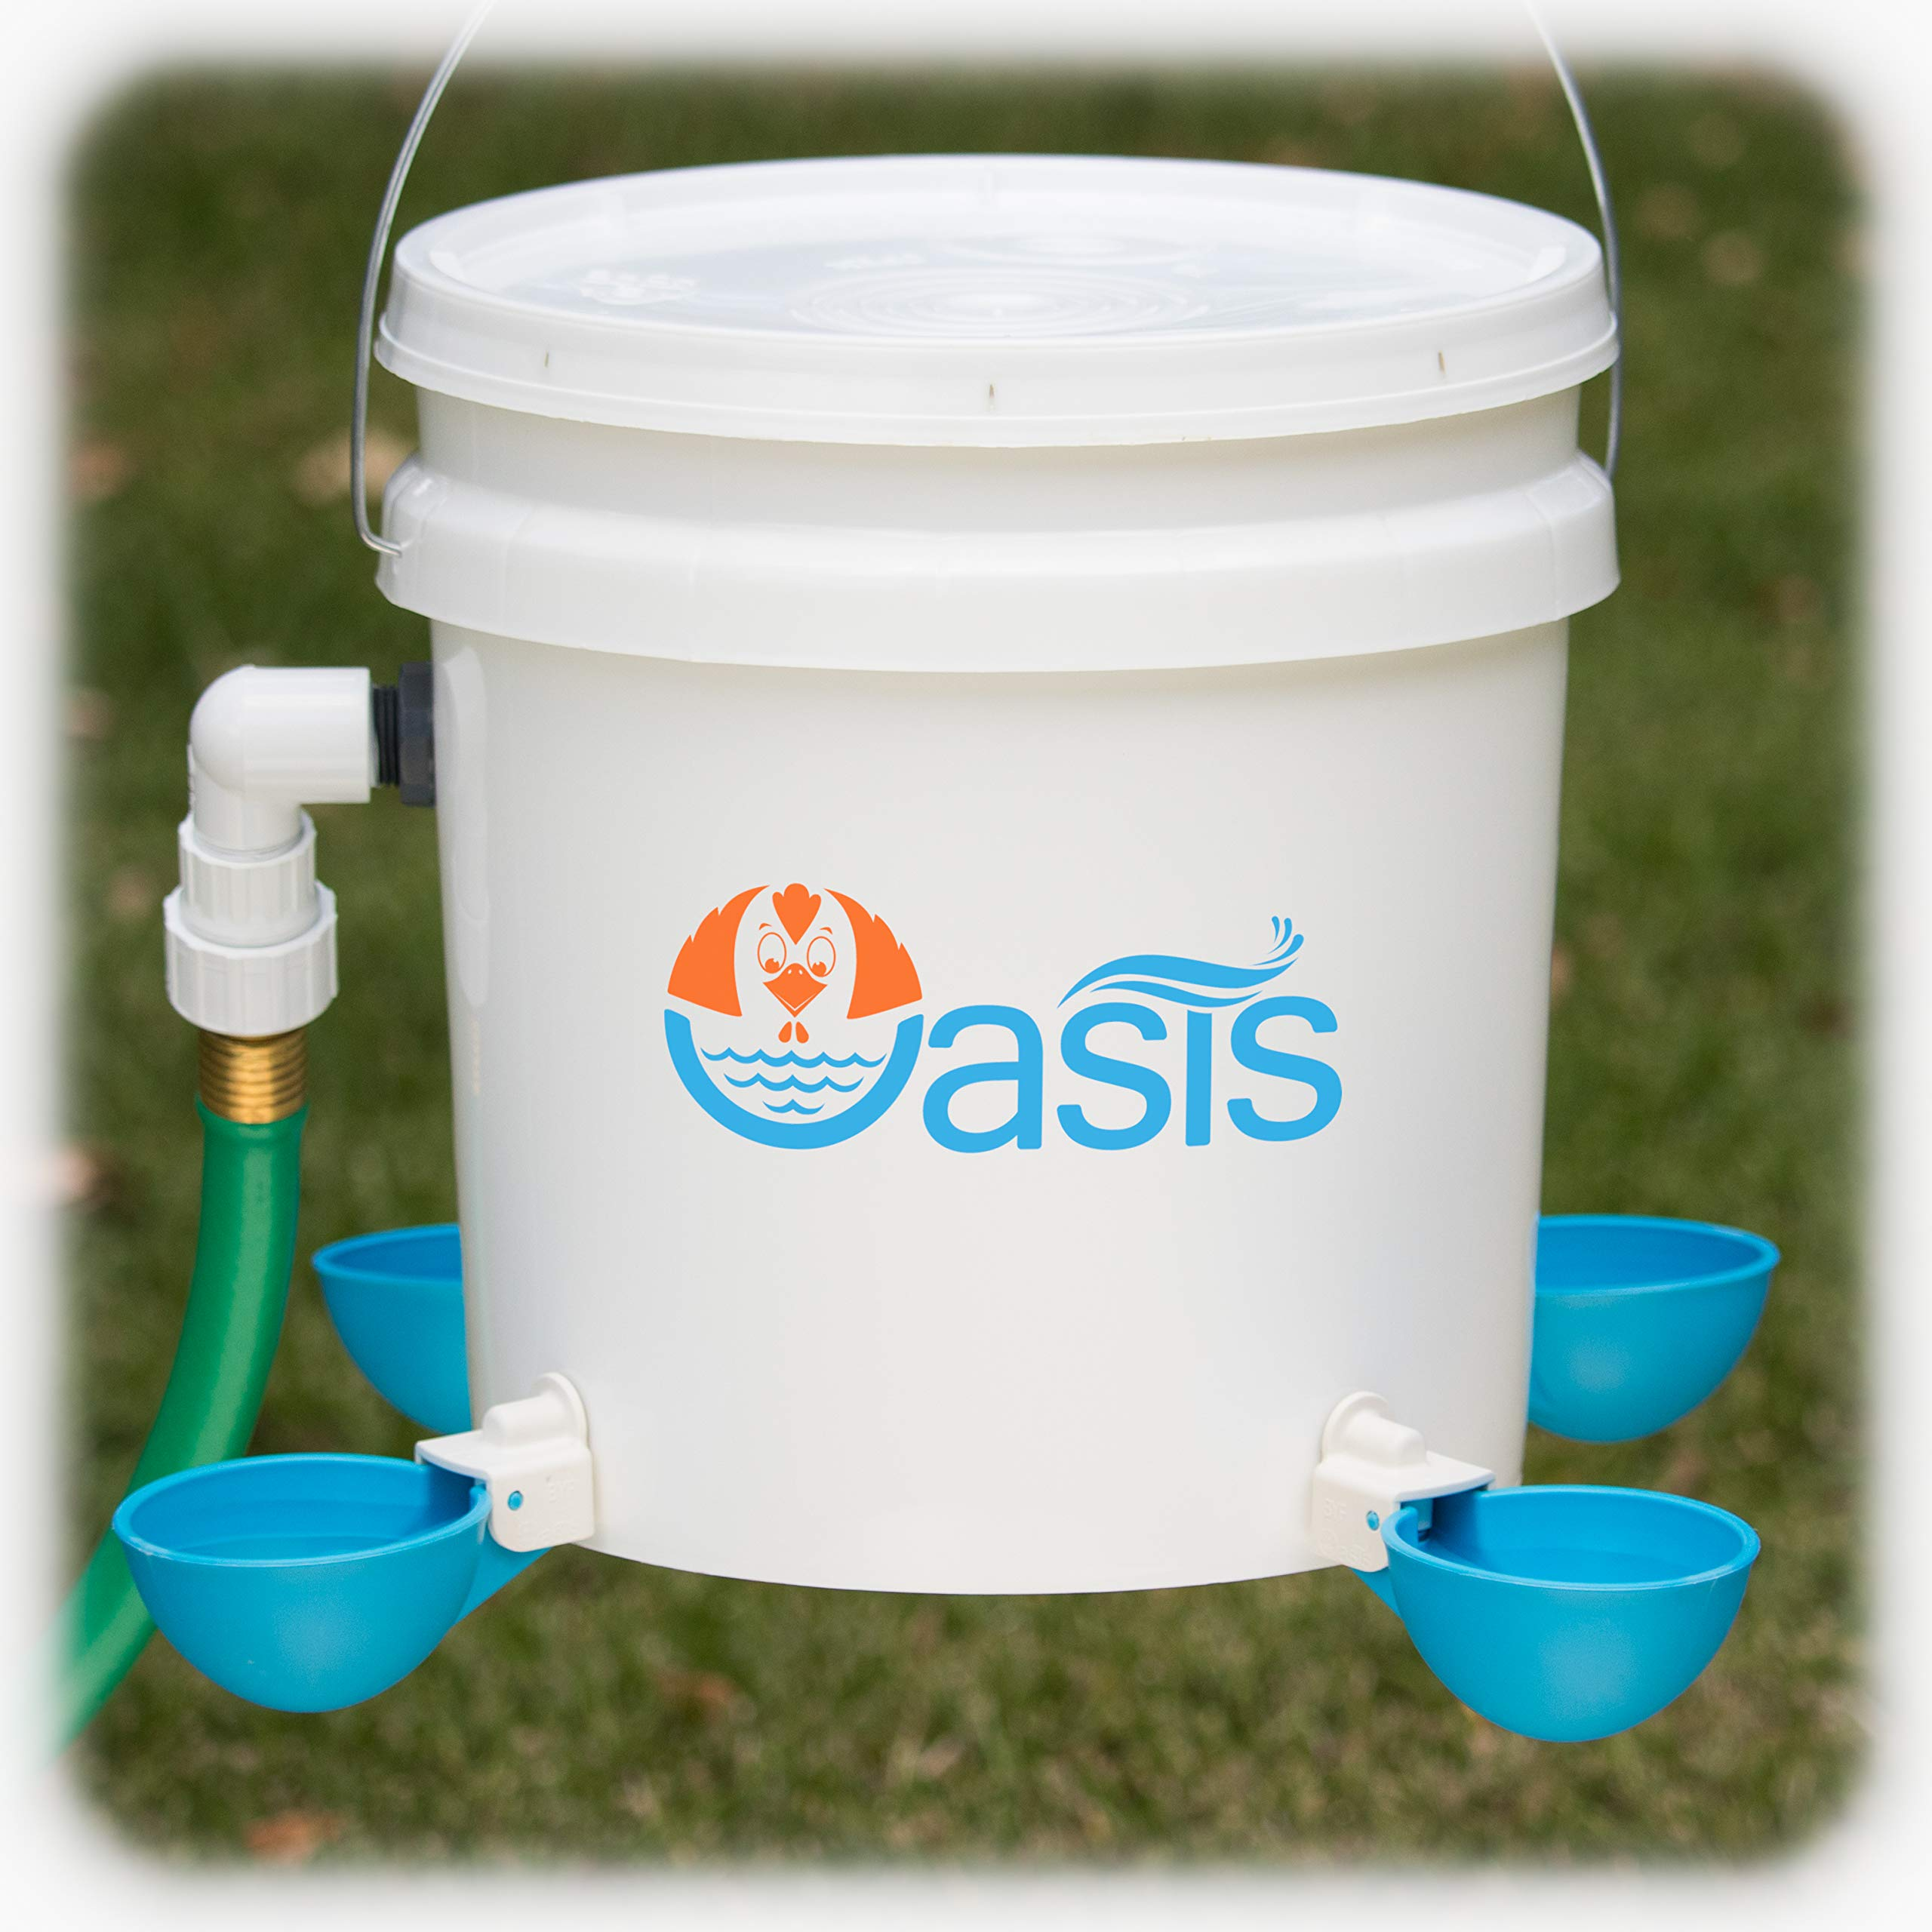 Oasis Chicken Waterer Kit (Bucket NOT Included)   Complete with Oasis Watering Cups, Bucket Float Valve and Drill Bits   4 Cup Kit (Blue) by Backyard Flock